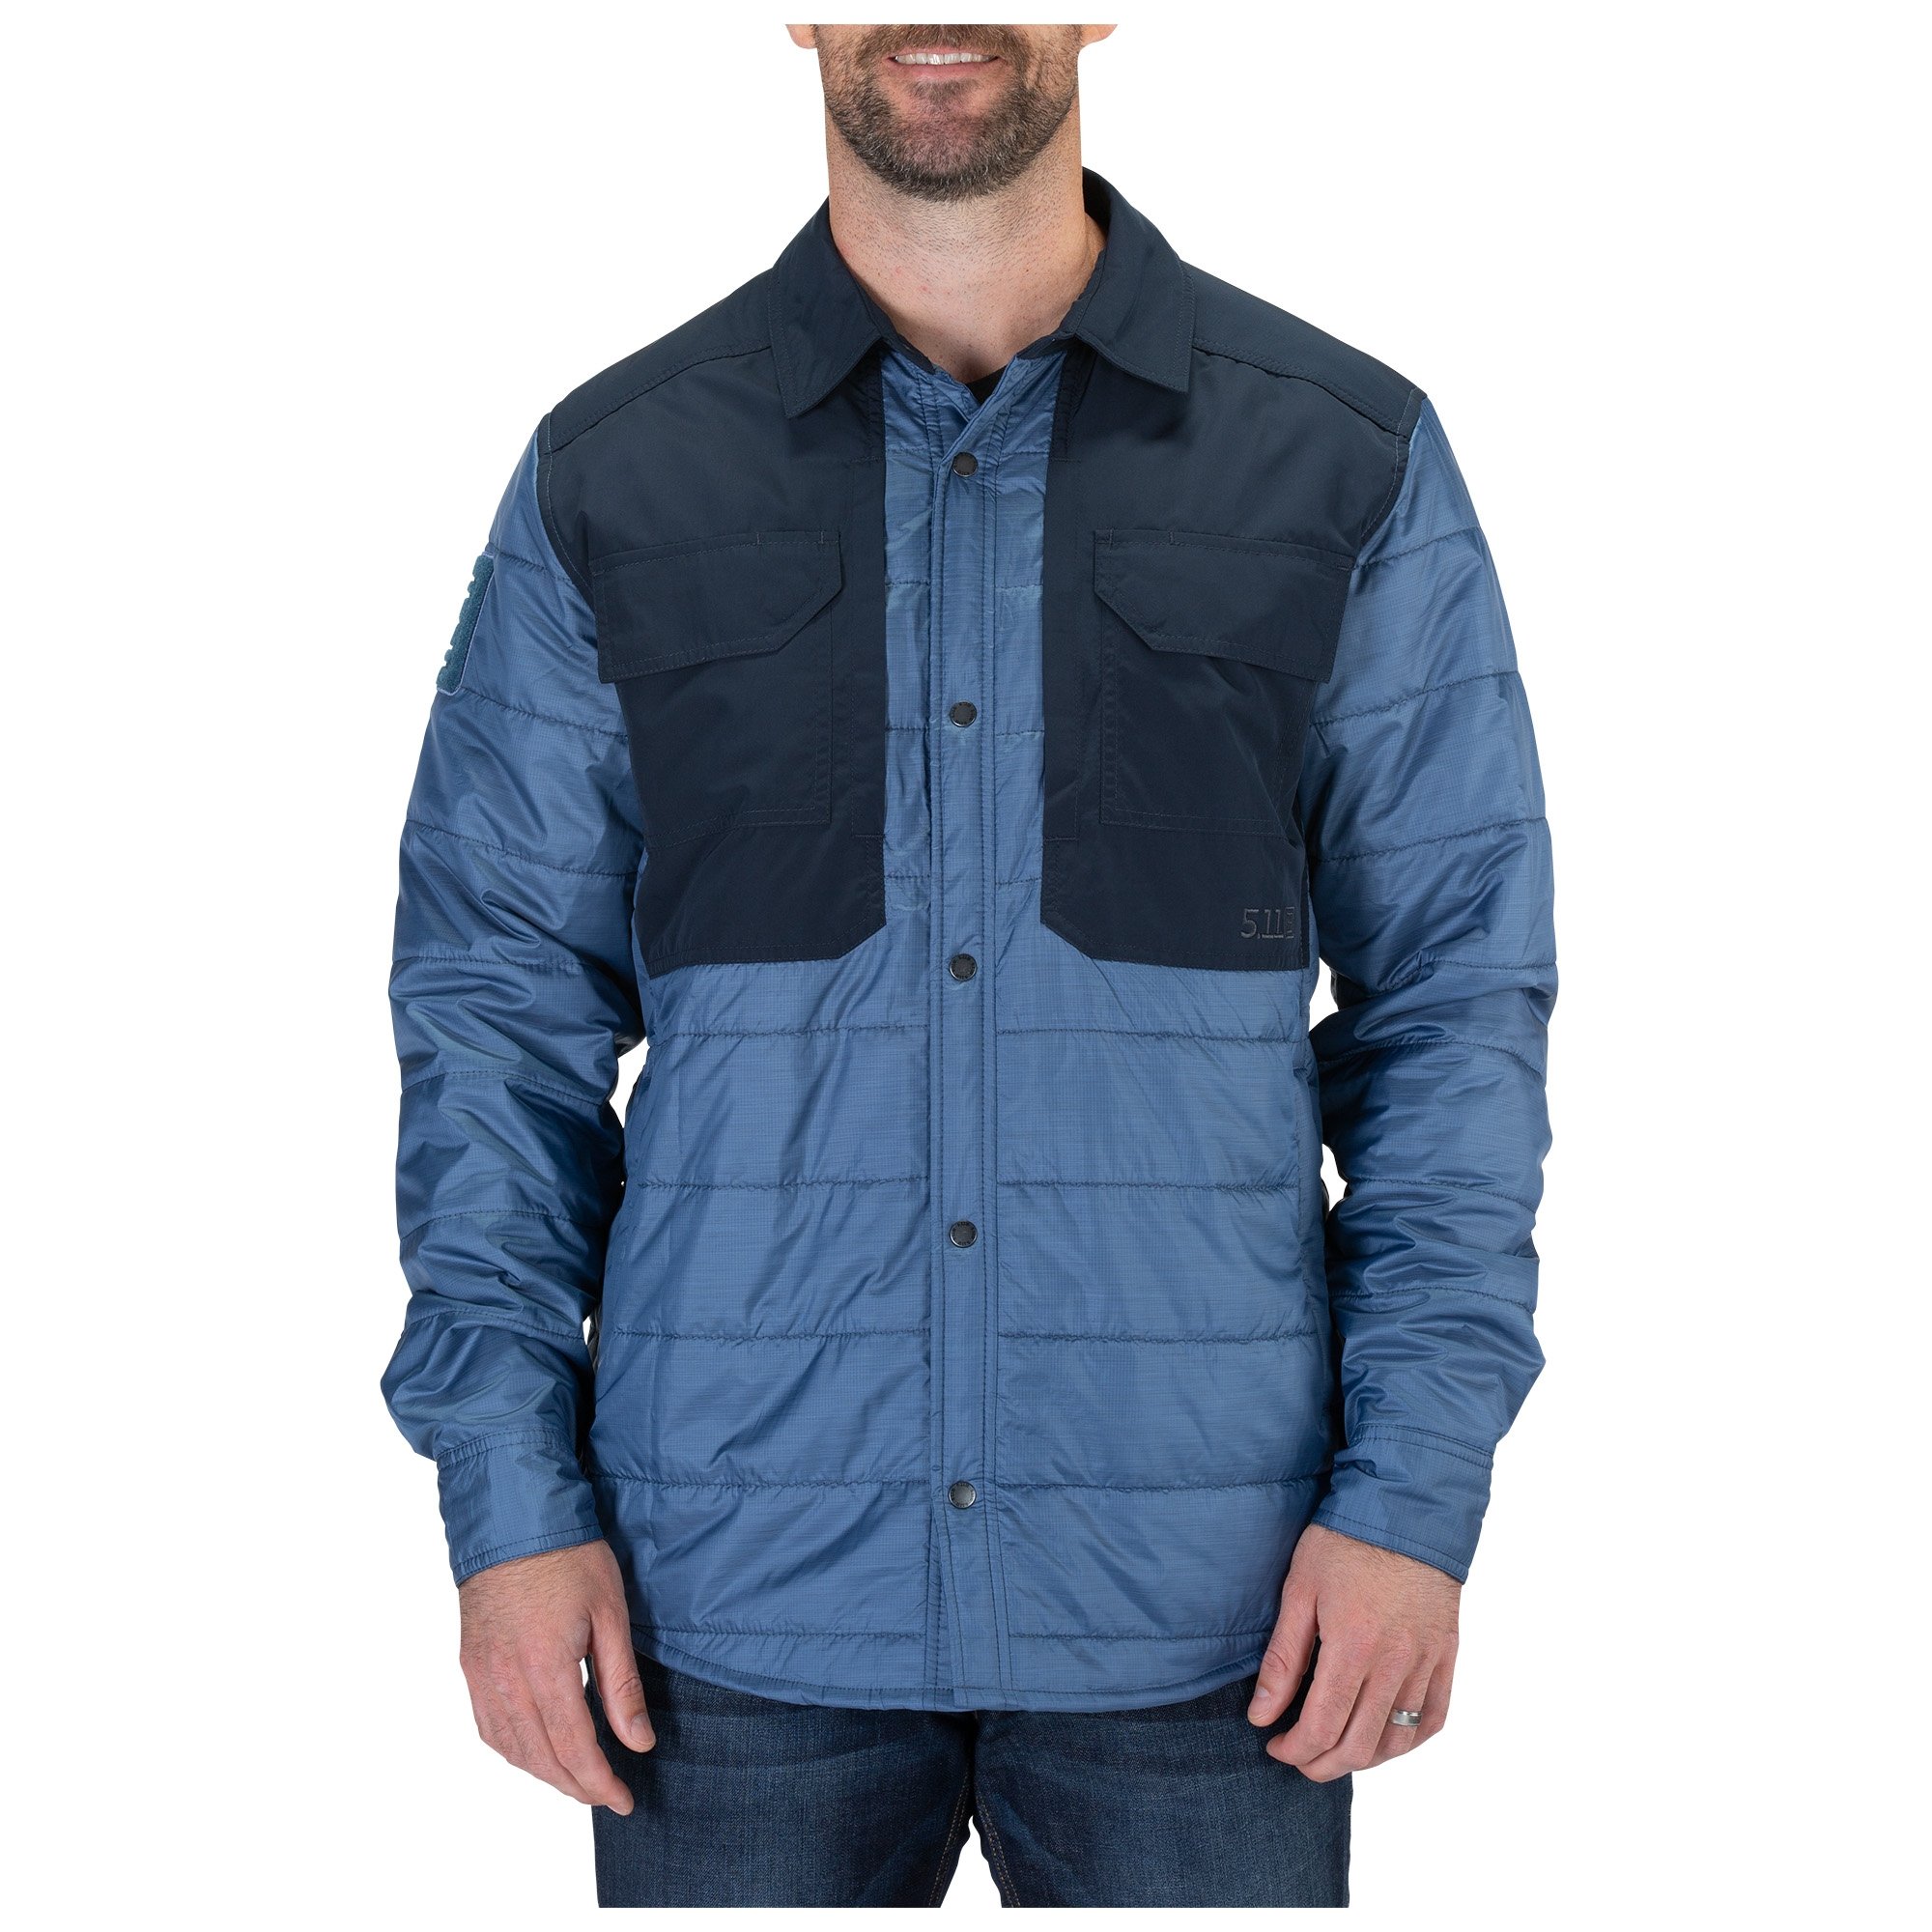 5.11 Tactical Men's Peninsula Insulator Shirt Jacket, Size S (CCW Concealed Carry)